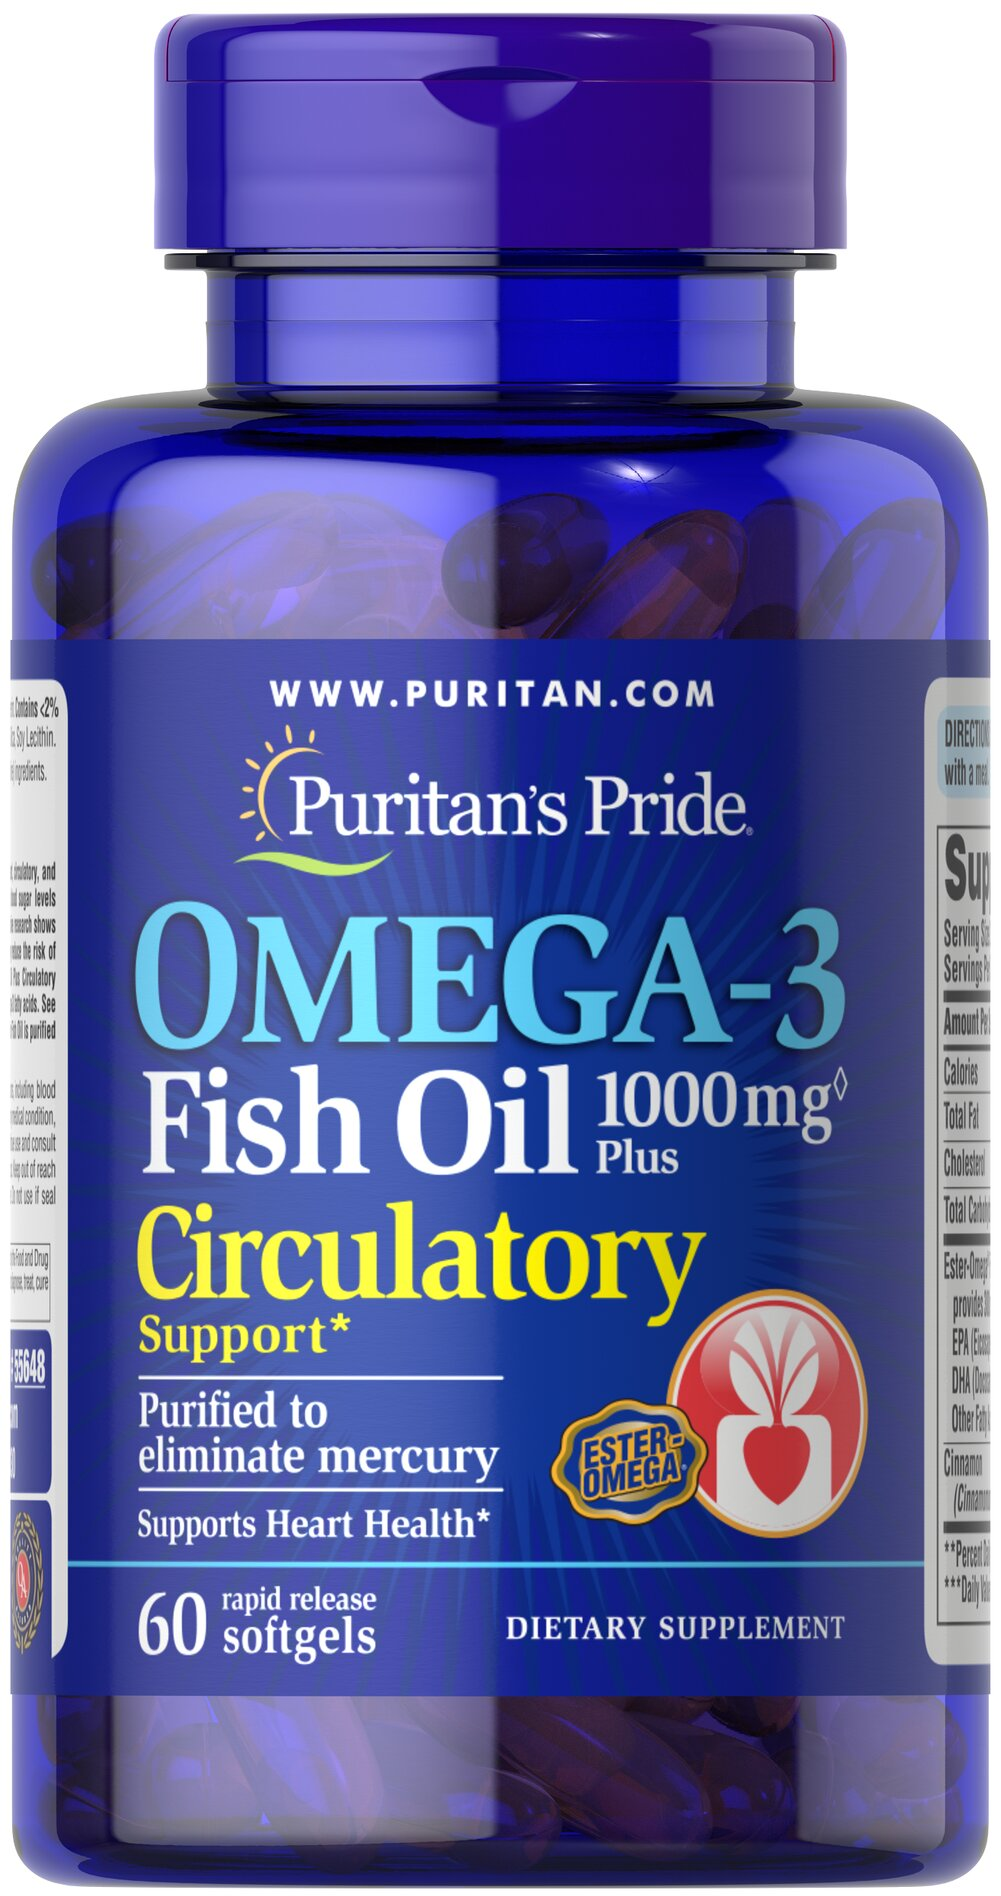 Omega-3 Fish Oil Plus Circulatory Support** <p>EPA and DHA fatty acids support heart, circulatory and metabolic health.** Fatty Acids play a role in providing an energy source for the body.** Supportive but not conclusive research shows that consumption of EPA and DHA omega-3 fatty acids may reduce the risk of coronary heart disease.** One serving of Omega-3 Fish Oil Plus Circulatory Support provides 300 mg total of EPA, DHA, and other Omega-3 fatty acids. See nutrition information for tot